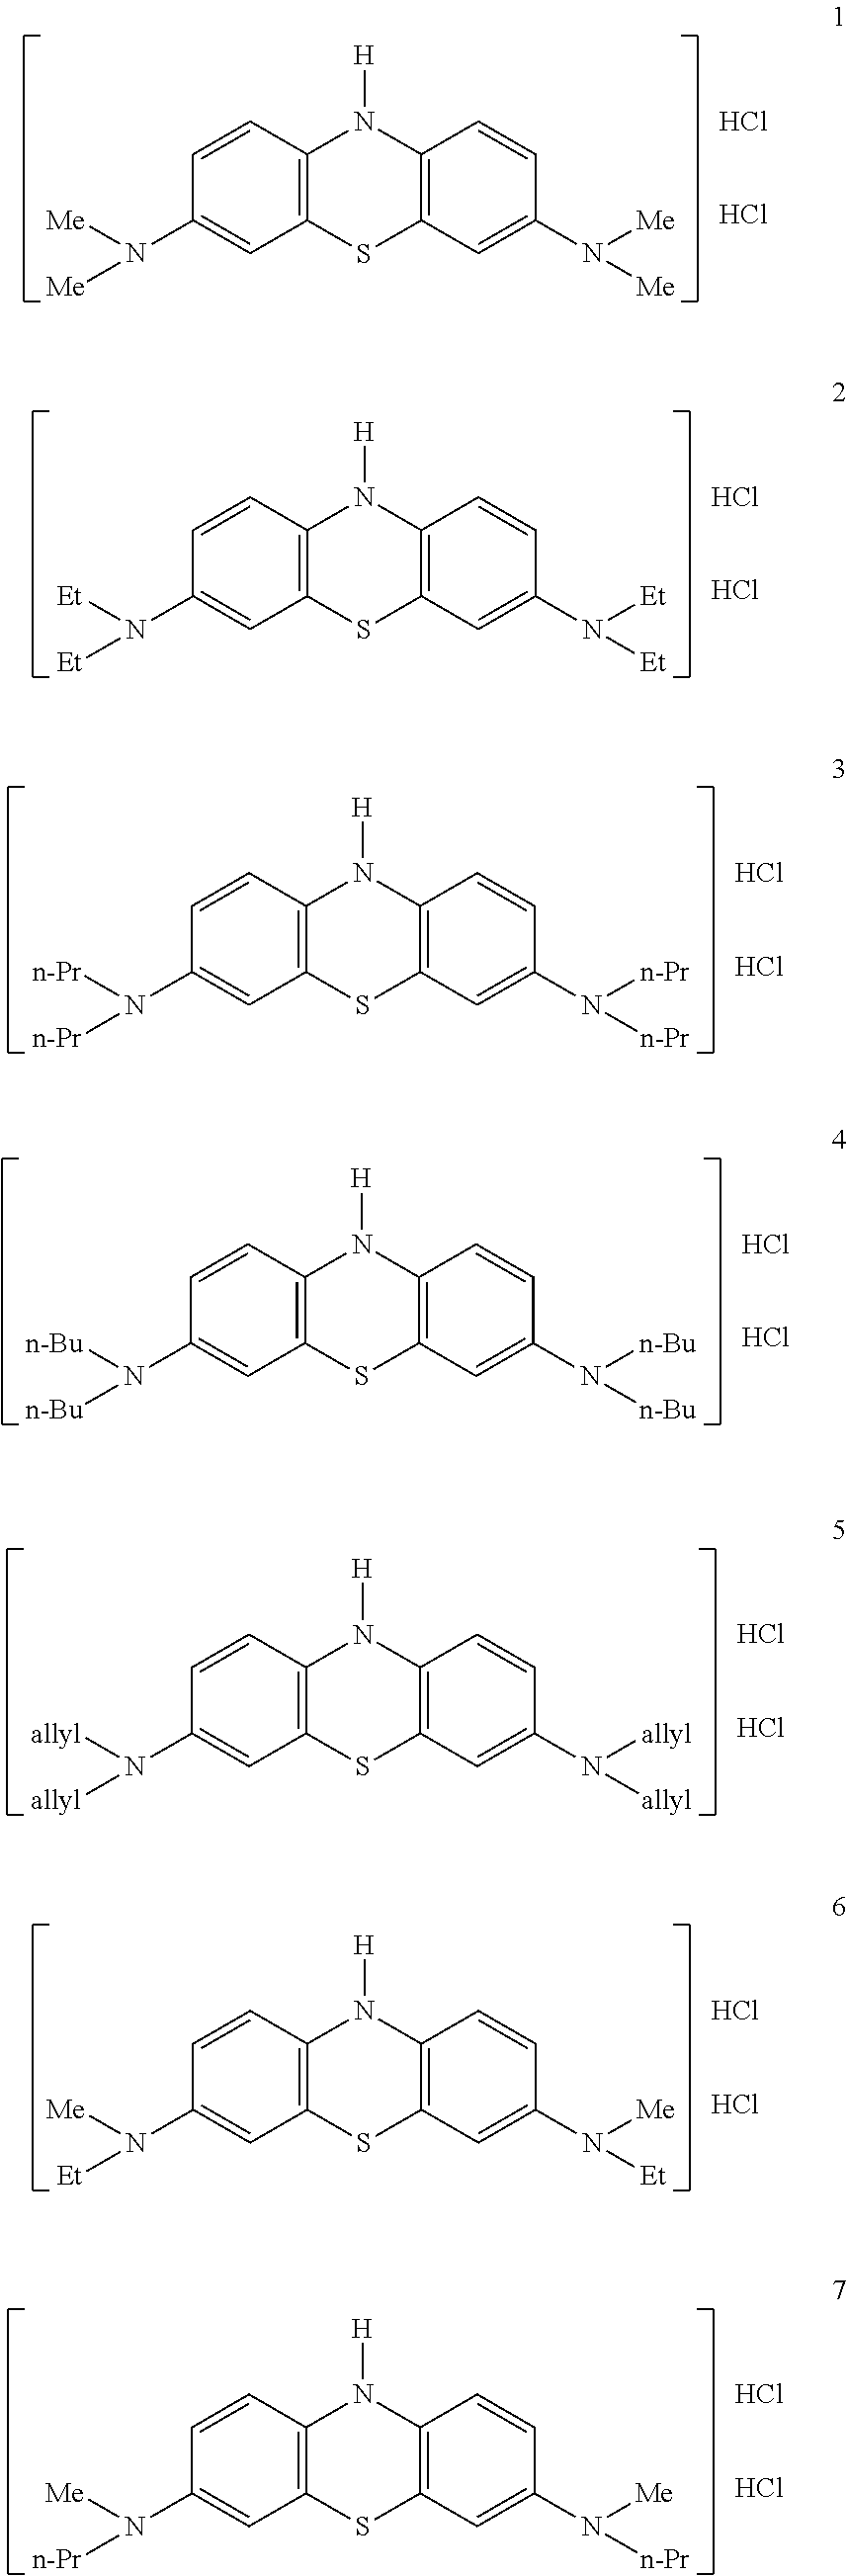 US9174954B2 - 3,7-diamino-10H-phenothiazine salts and their use